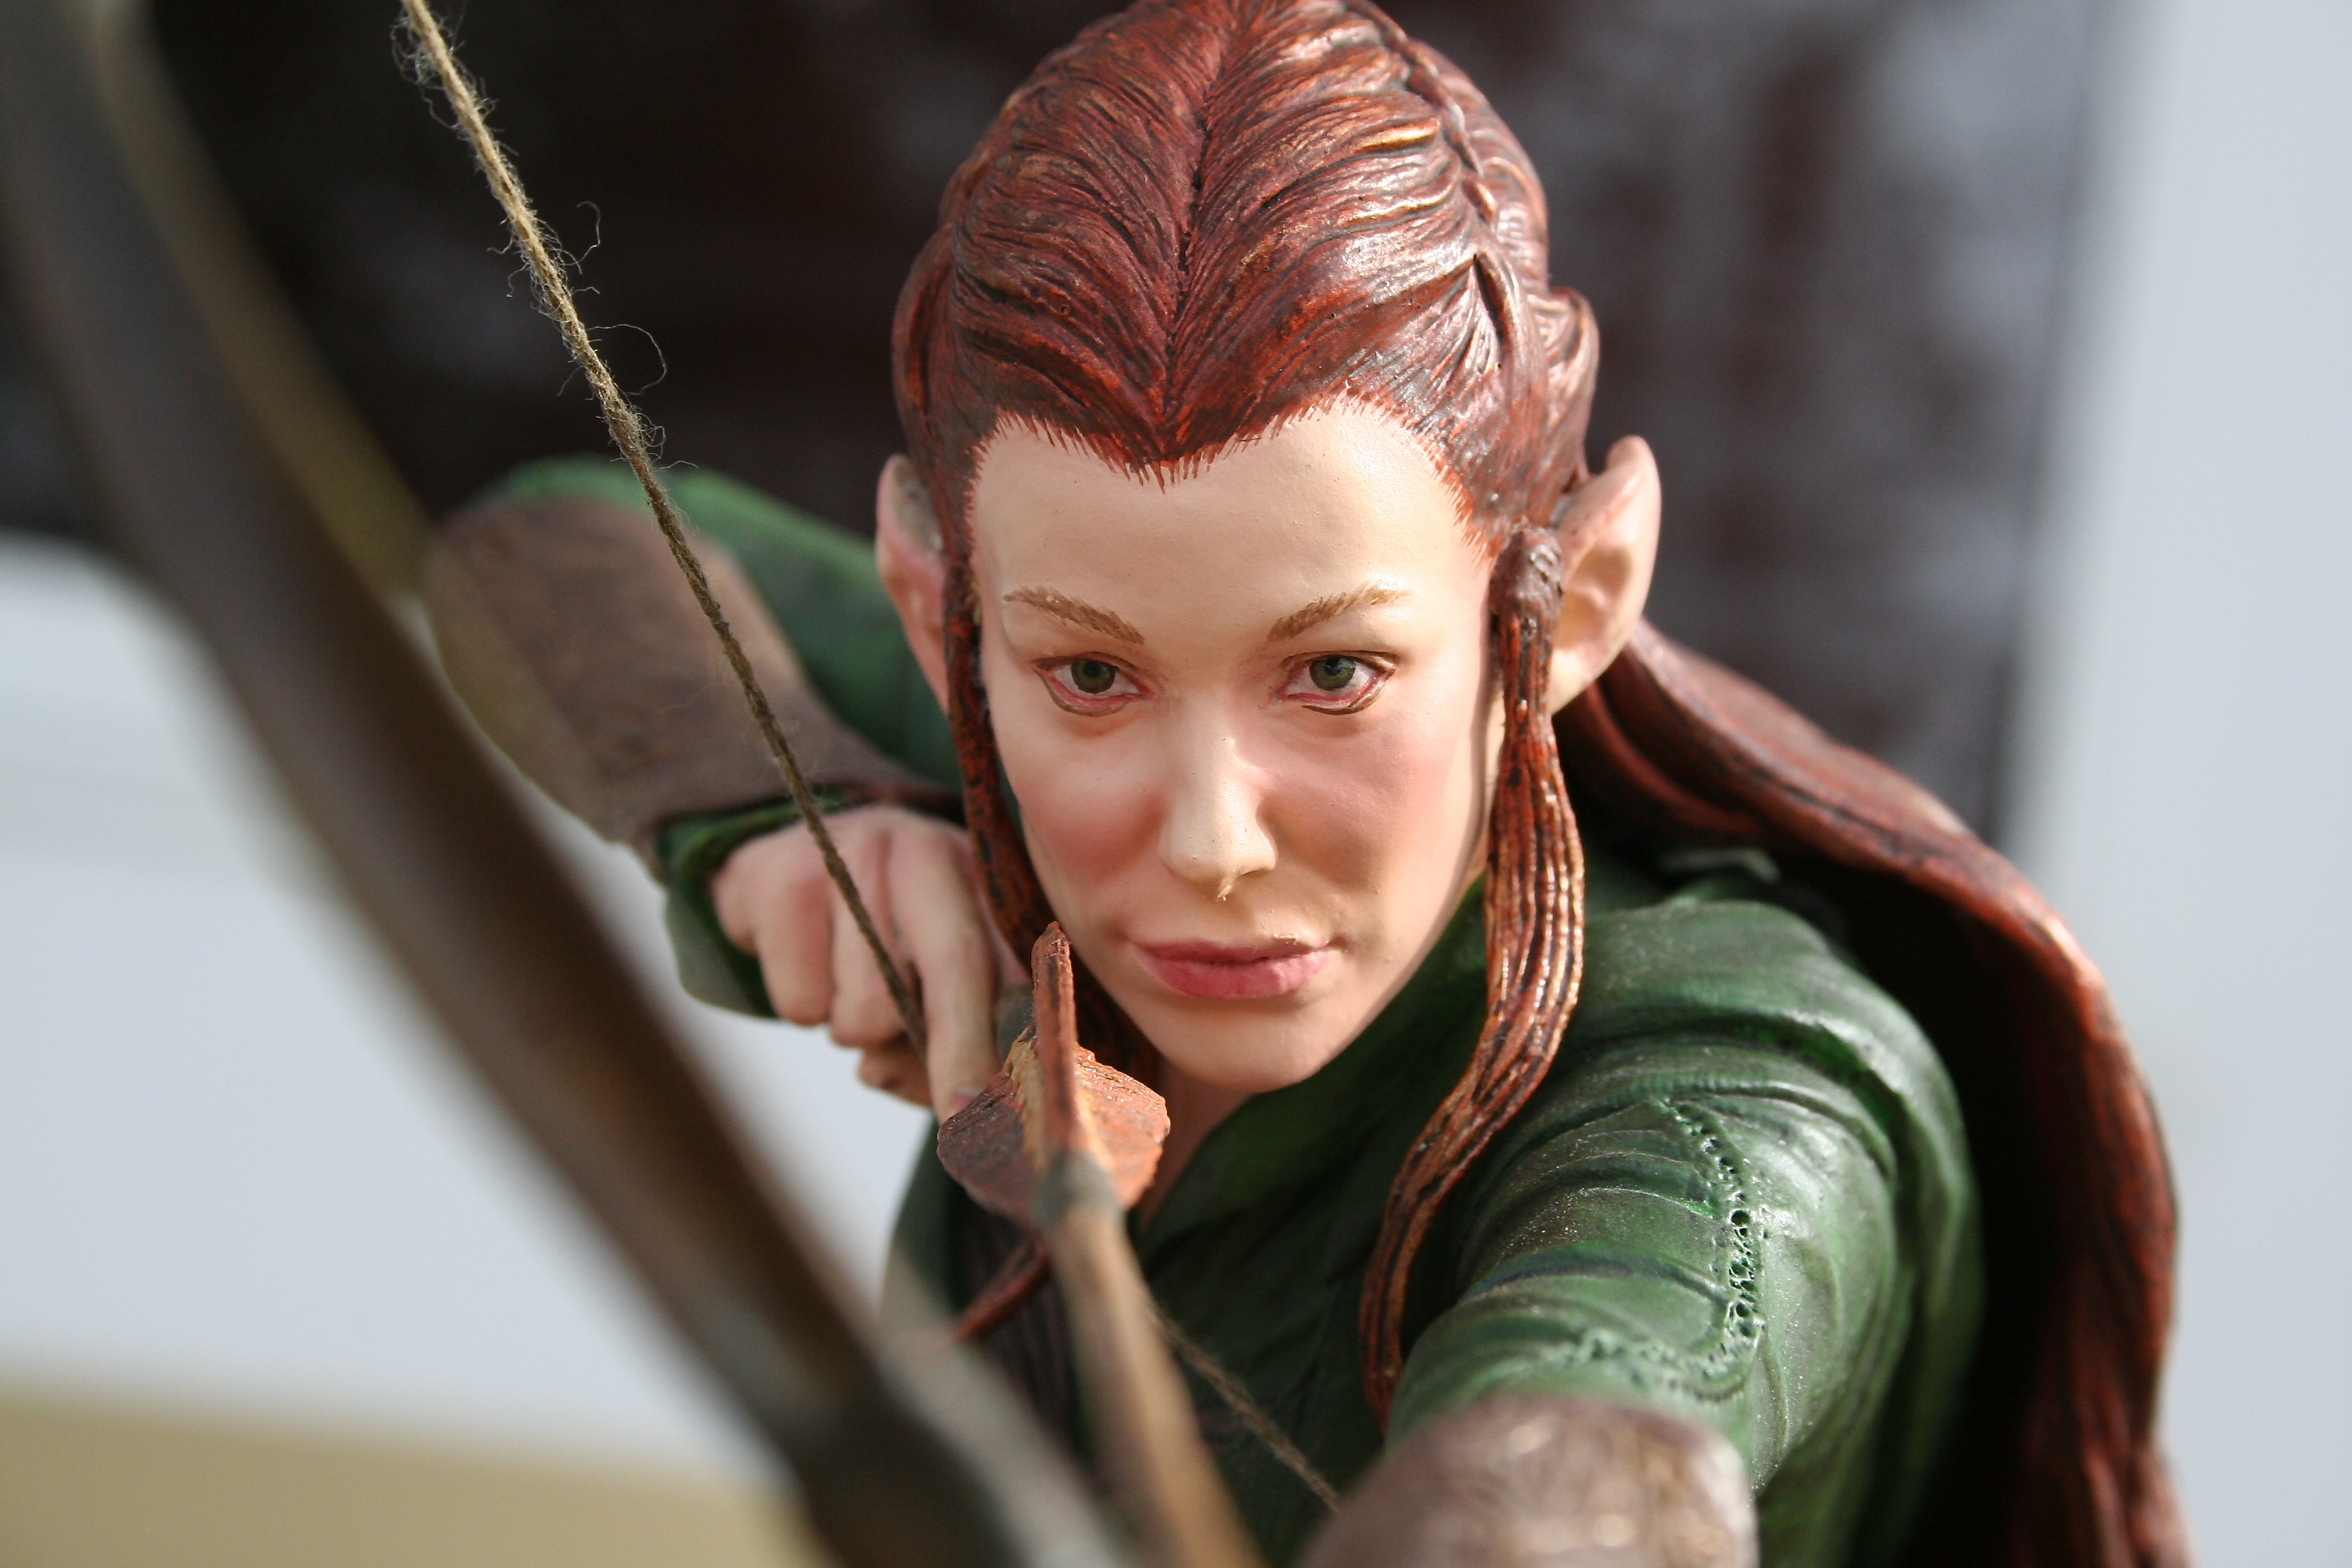 Evangeline Lilly The Hobbit Wallpapers HD 3456x2304